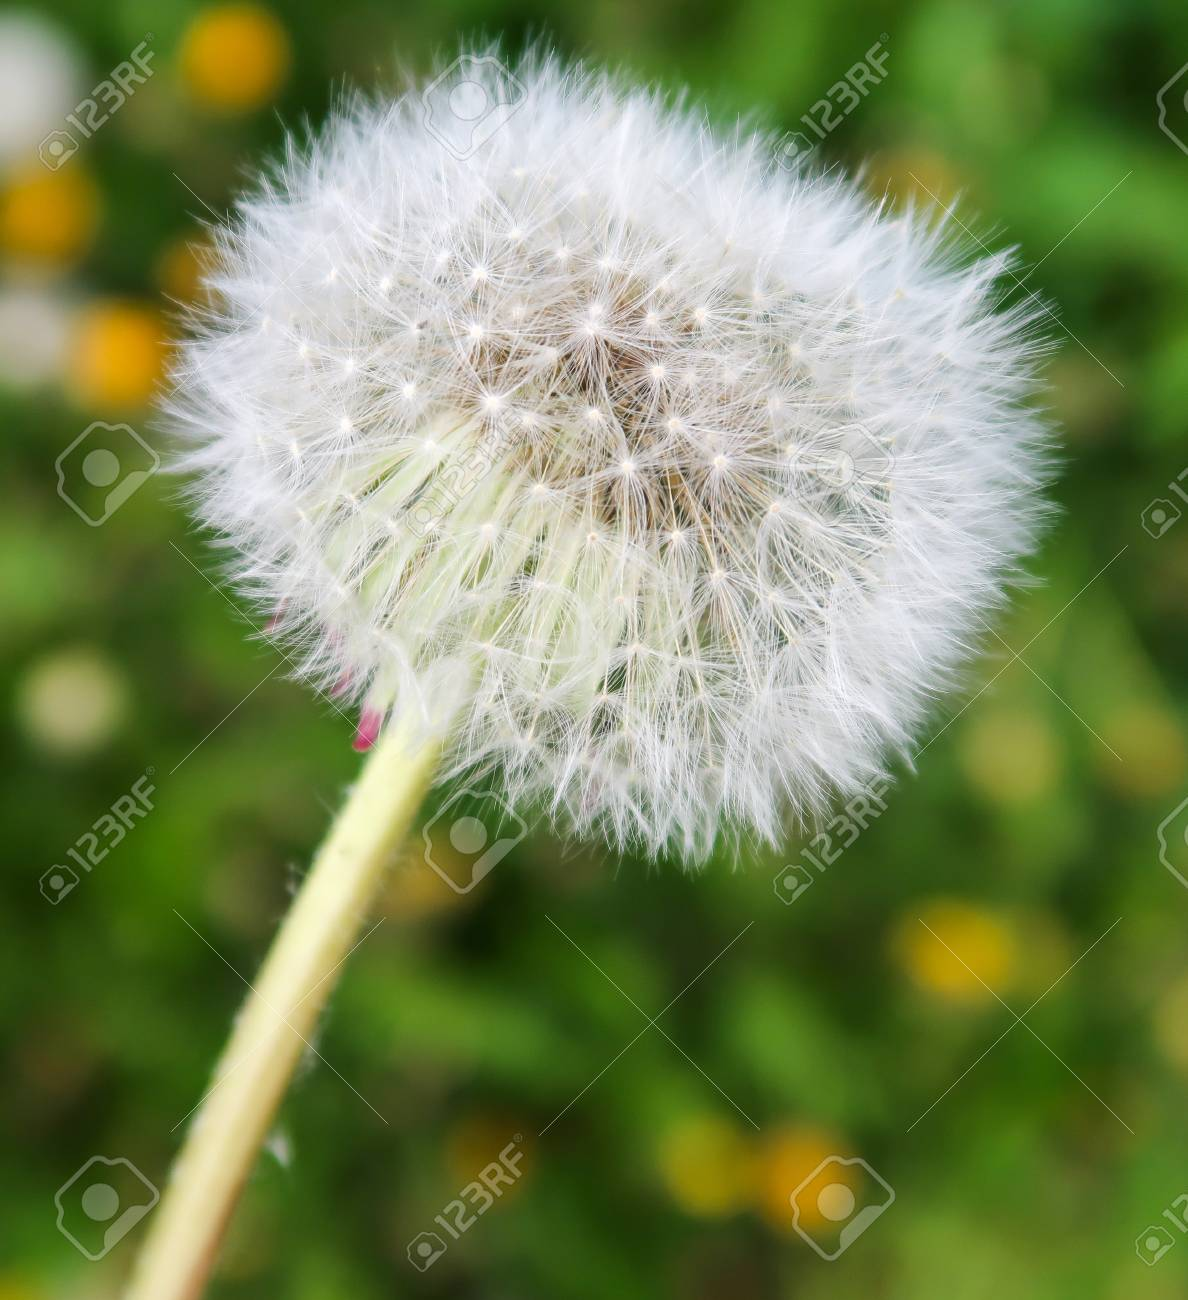 White dandelion flower close up stock photo picture and royalty stock photo white dandelion flower close up mightylinksfo